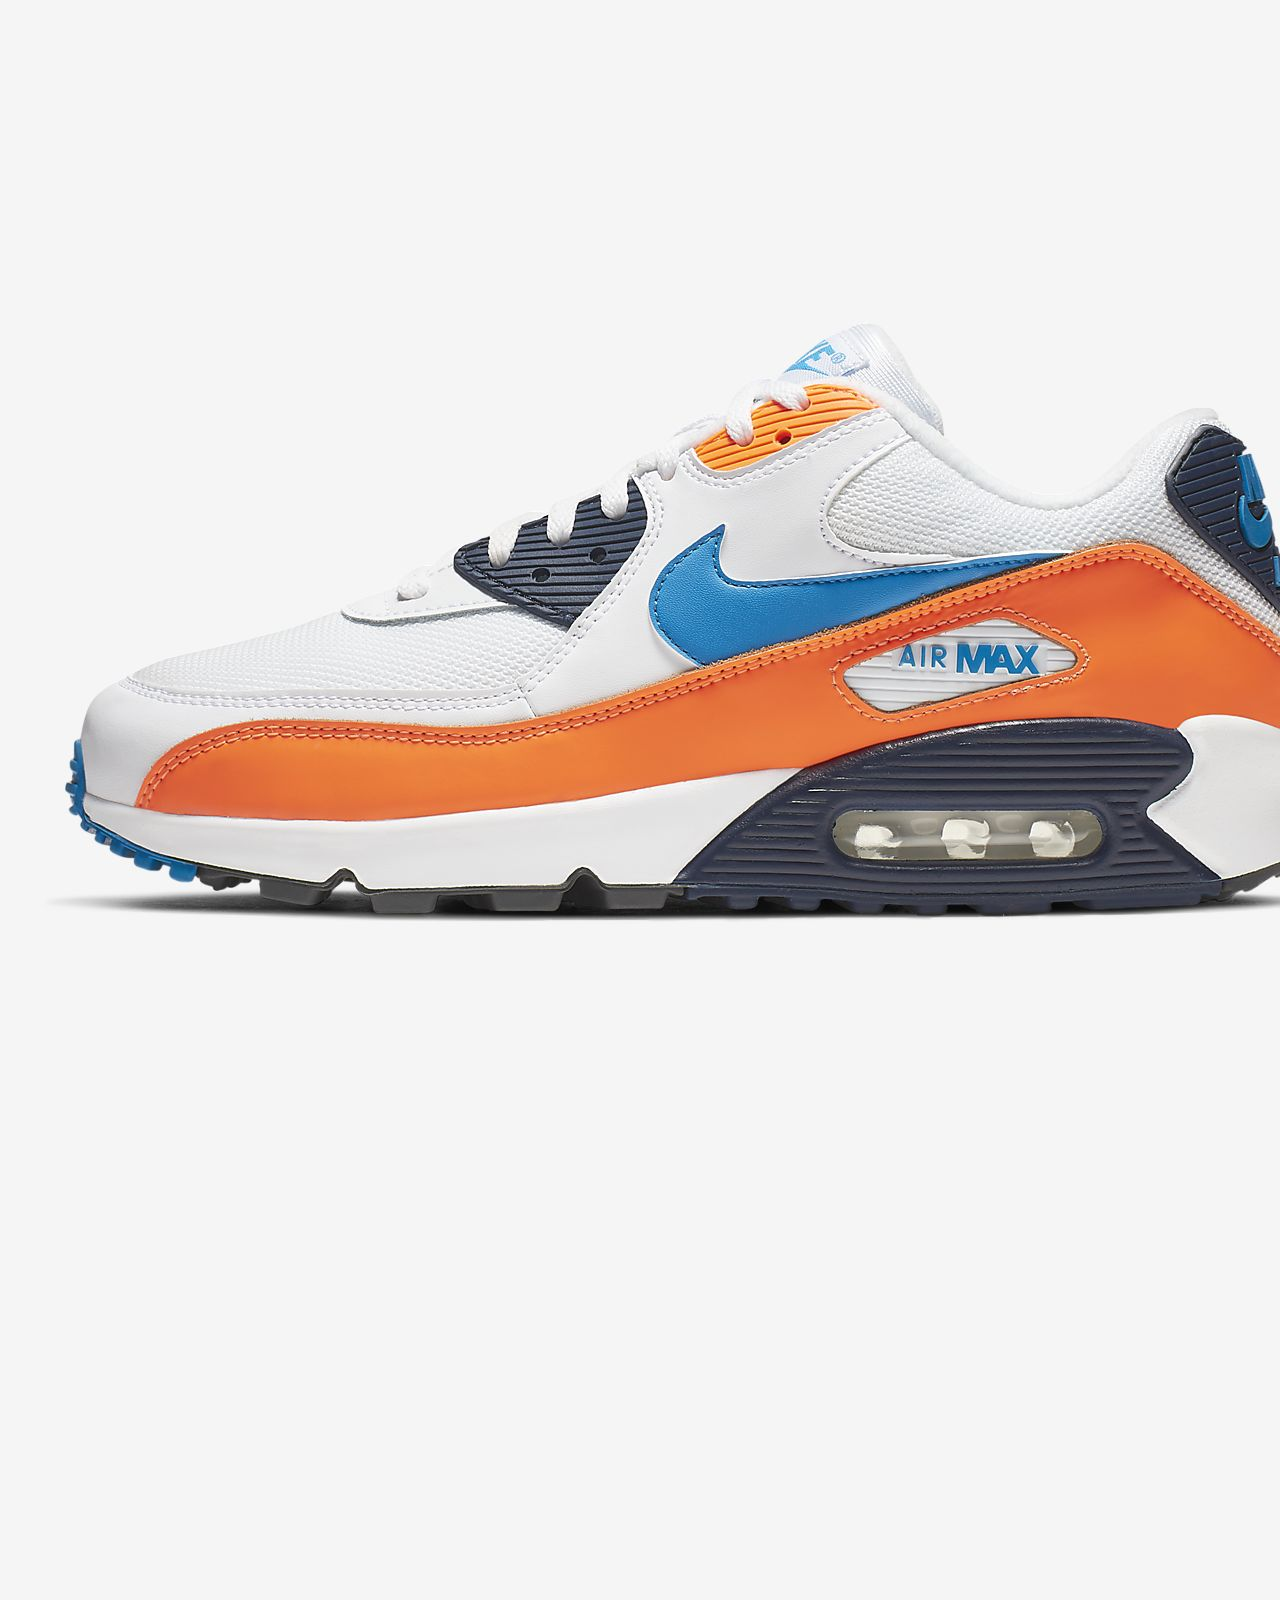 separation shoes 1d9d2 e6522 ... Nike Air Max 90 Essential Men s Shoe